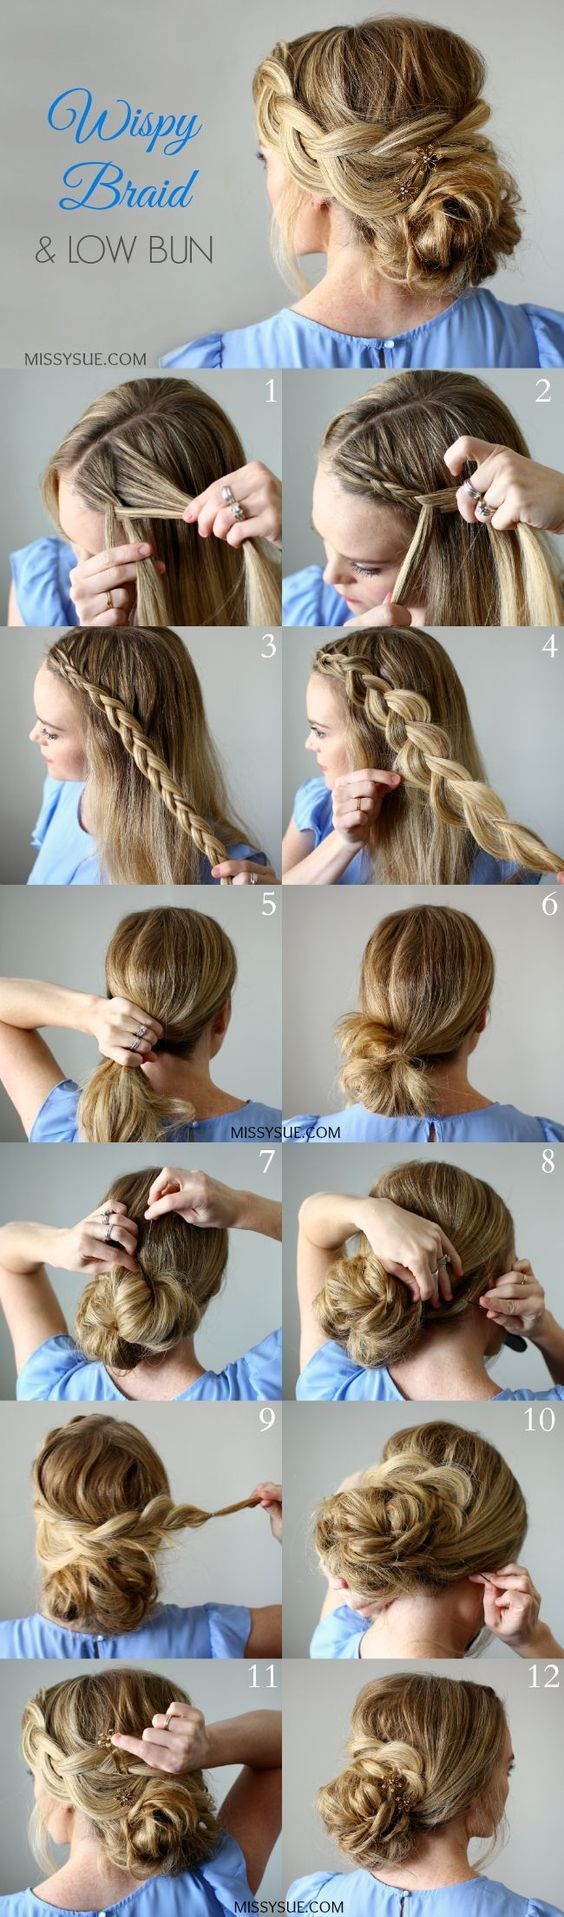 best 25+ fast hairstyles ideas on pinterest | fast easy hairstyles